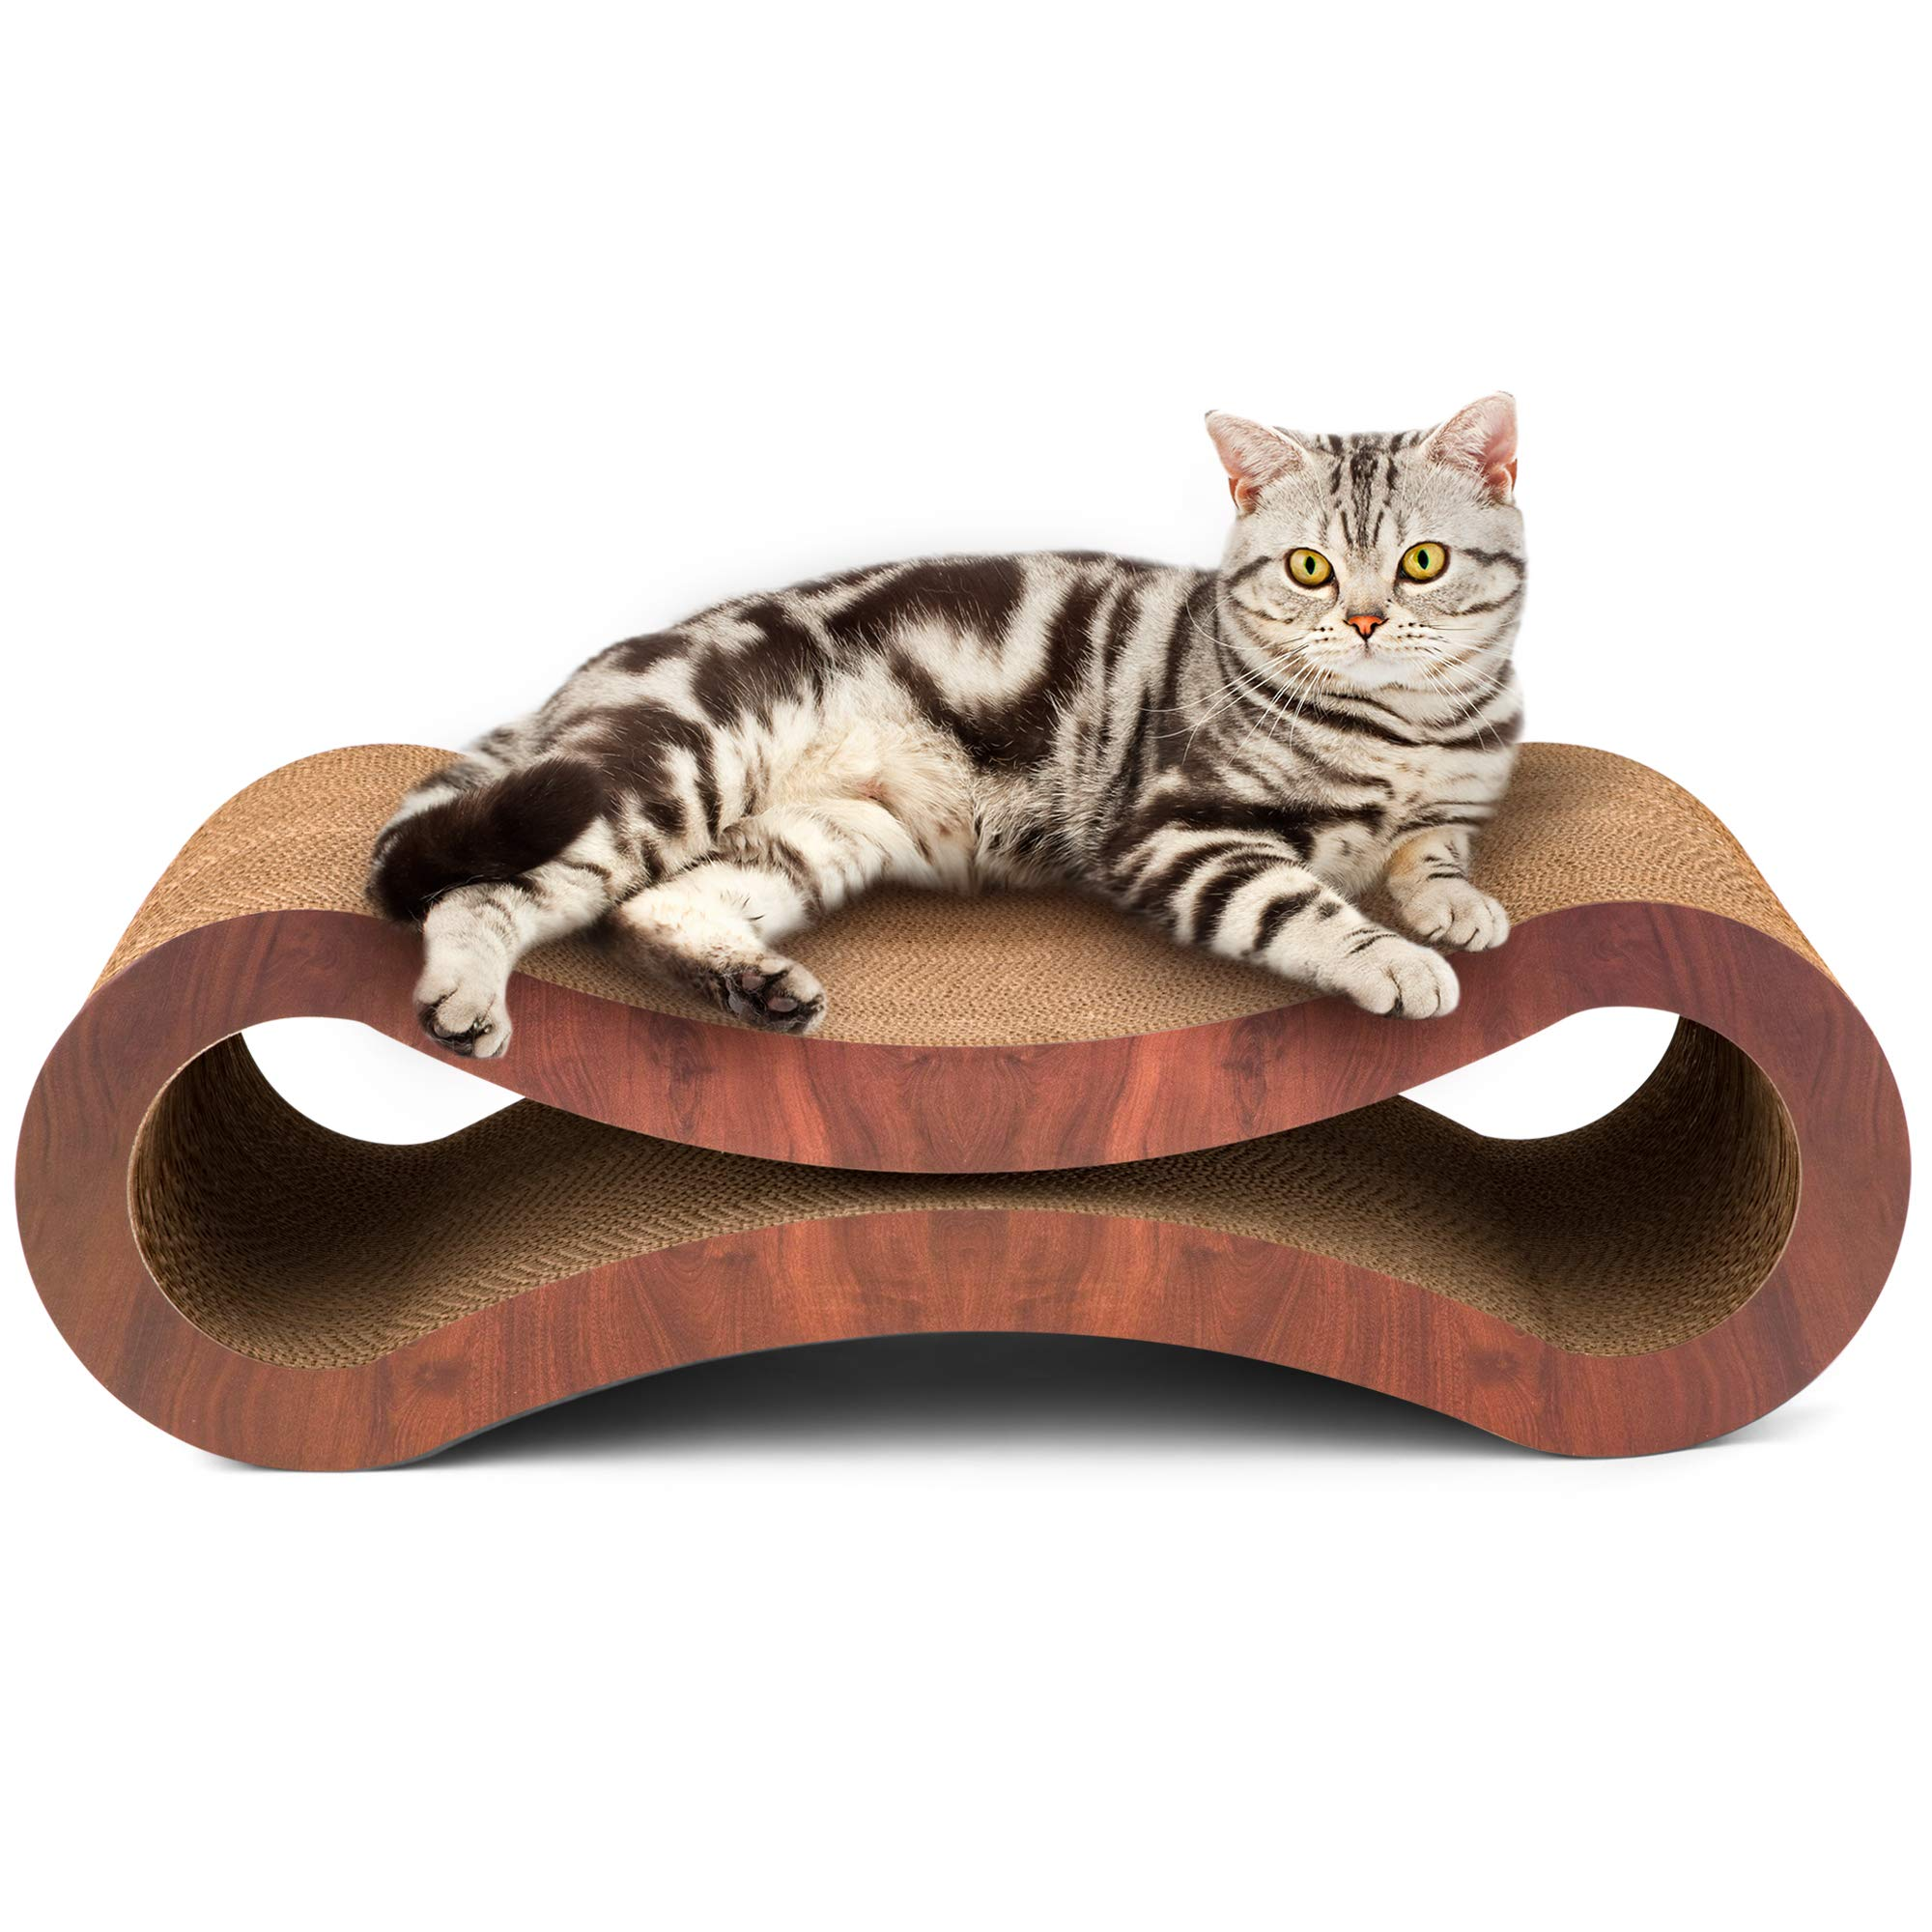 SPifTY Kitty Says 'I Own it and I Love it'! Cat Scratching Post Cat Tree Couch. Cardboard Cat Posts and Scratchers Durable Stylish Superior Comfortable EcoFriendly Cherrywood Cat Furniture by SPifTY